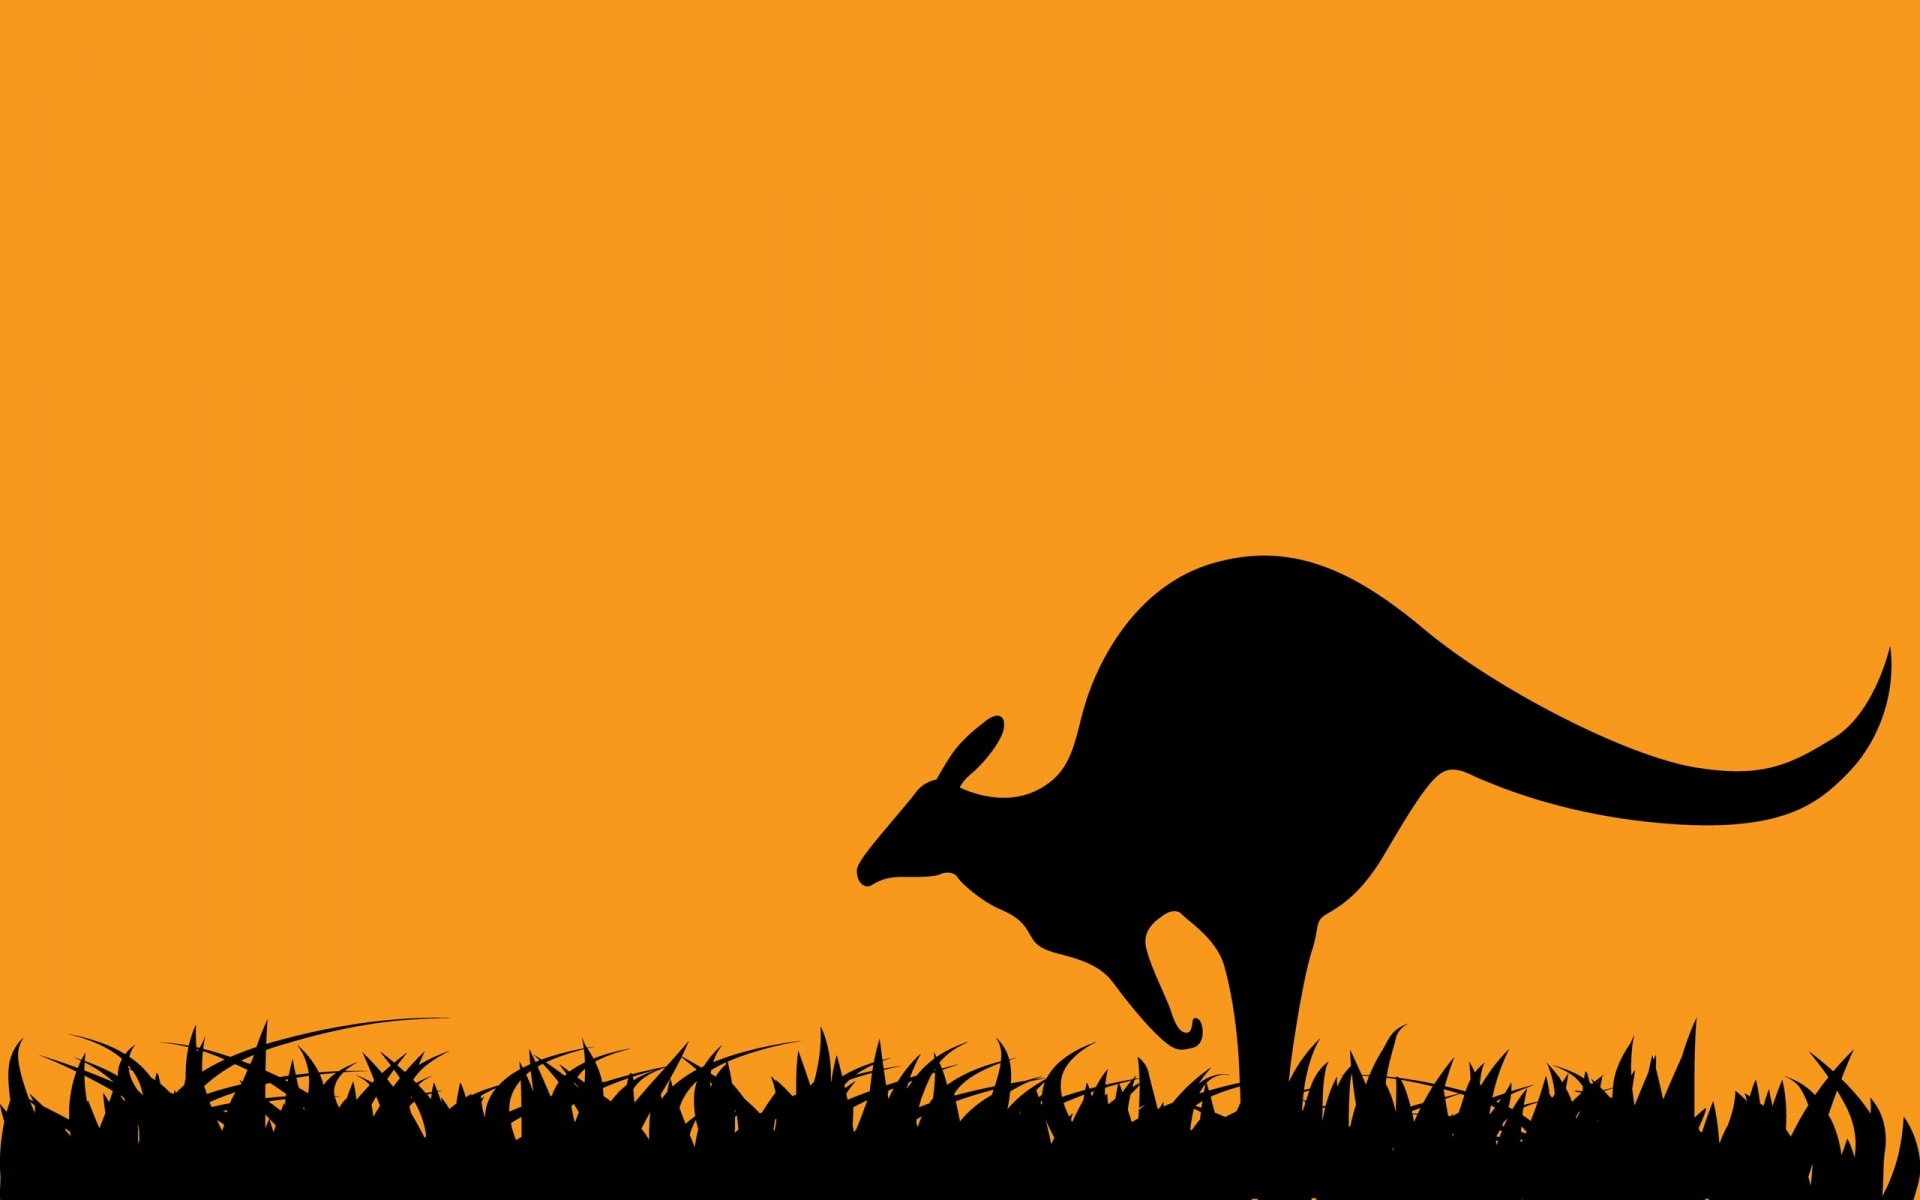 Kangaroo widescreen